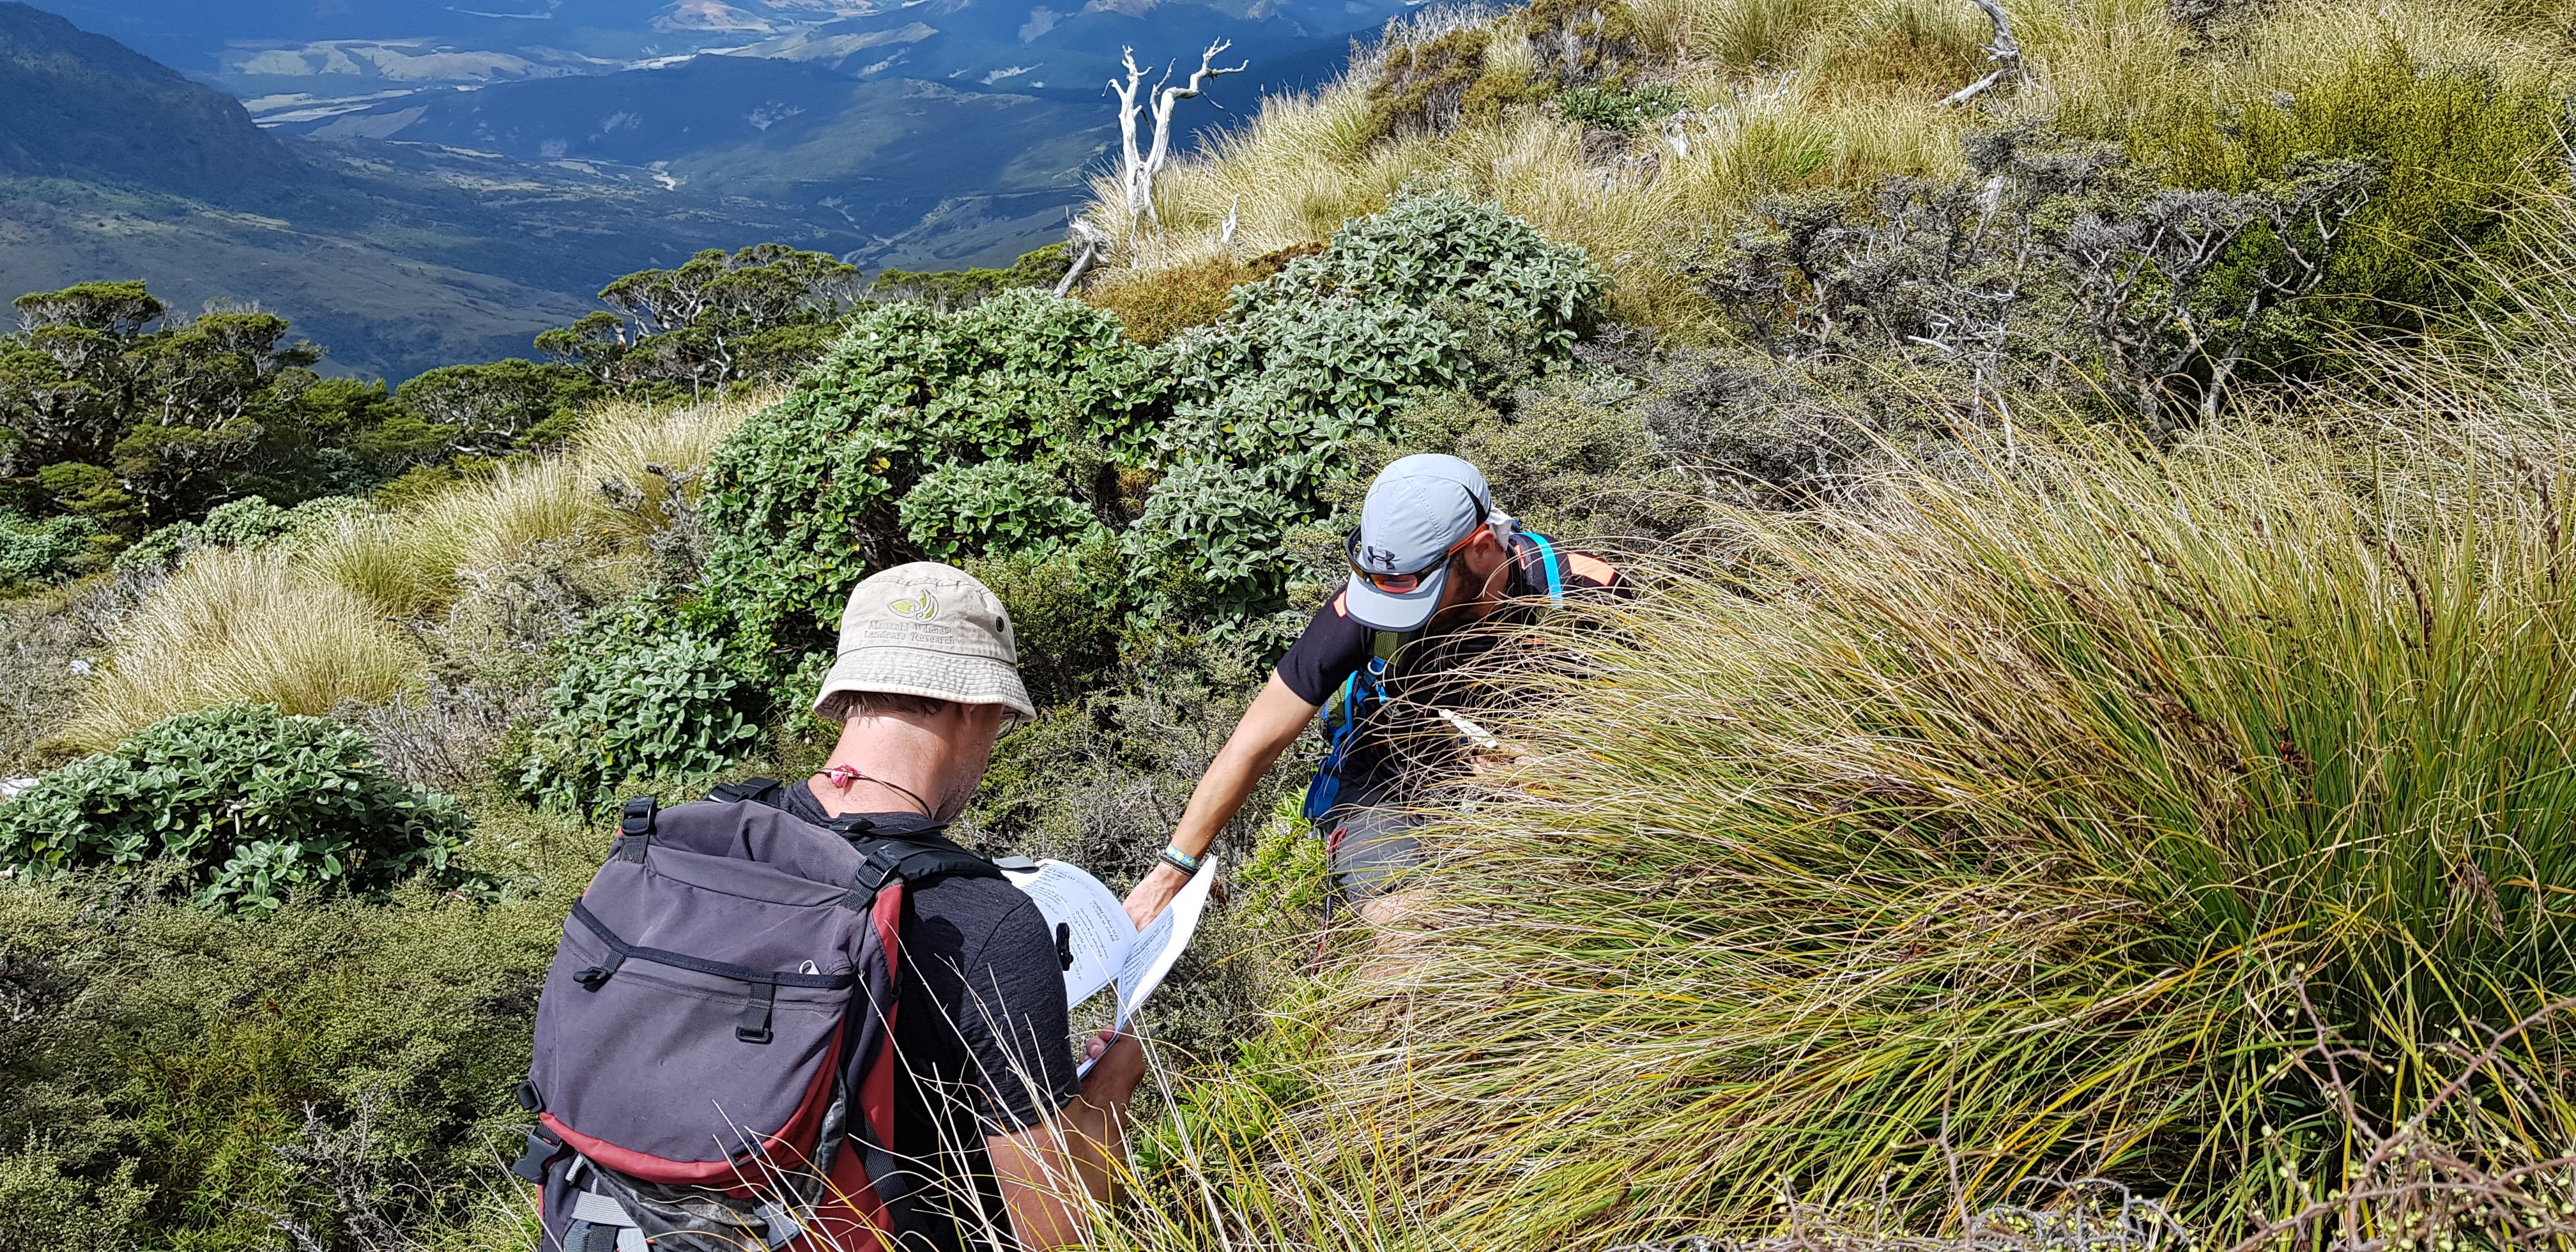 Two people crouched in the bush and long grass on the side of a mountain